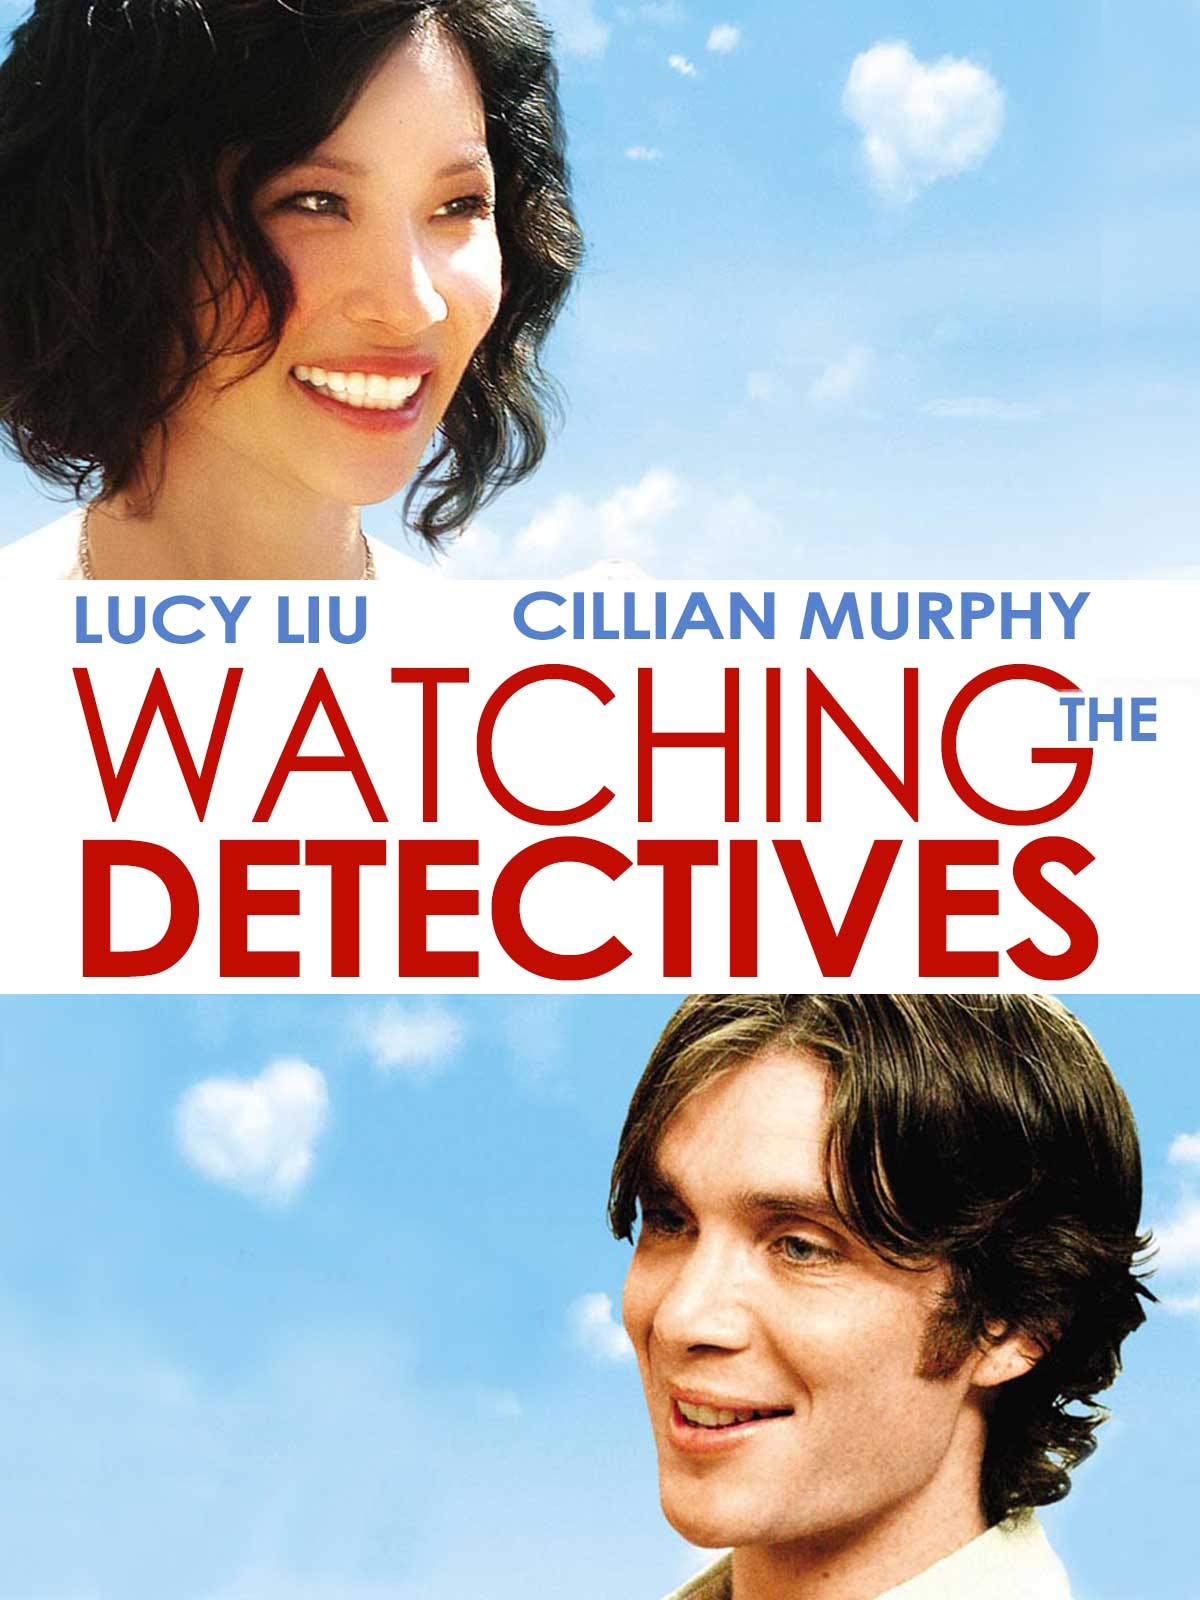 Watch Watching the Detectives on Amazon Prime Video UK